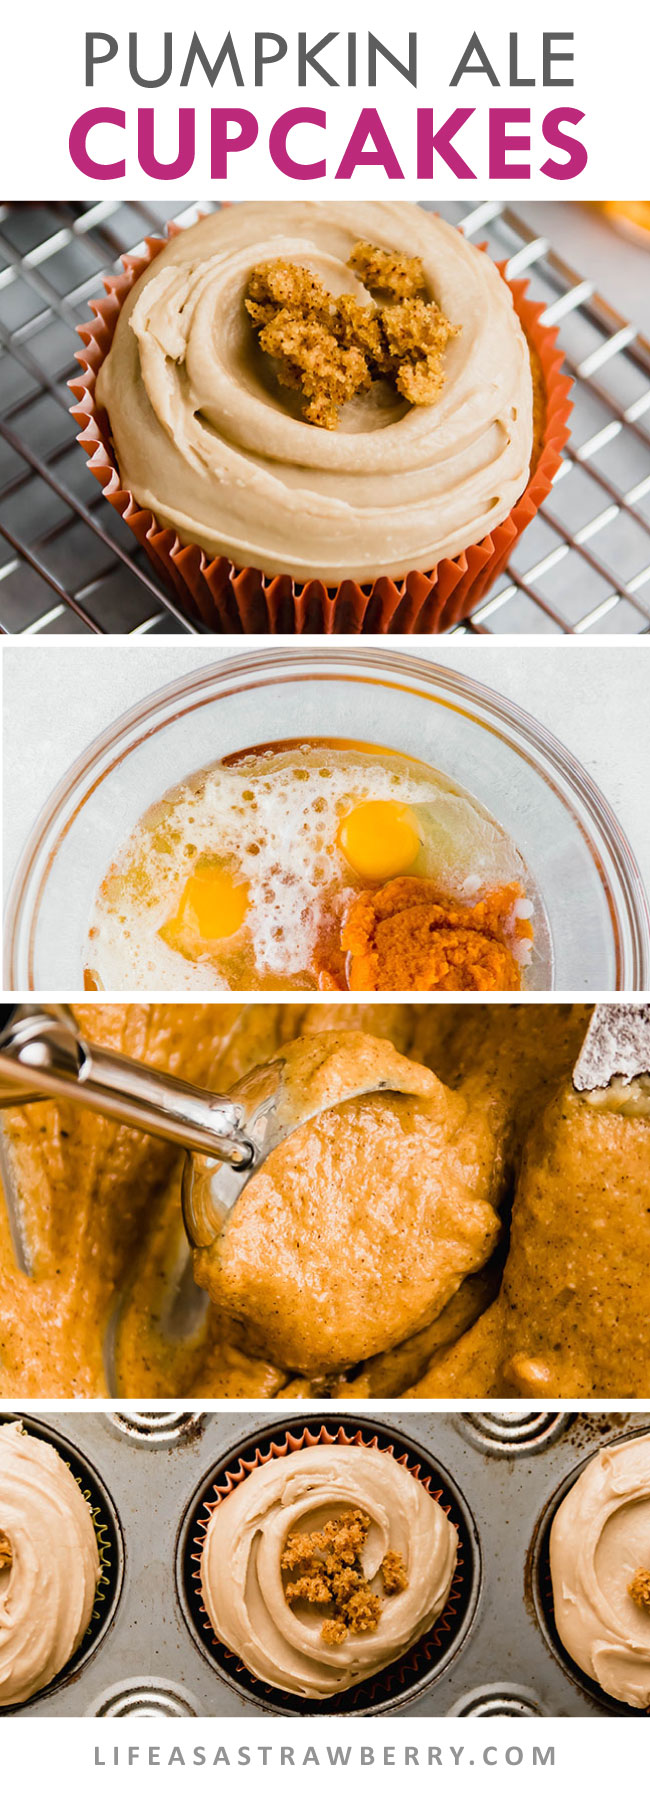 Photo collage showing the steps of making pumpkin cupcakes